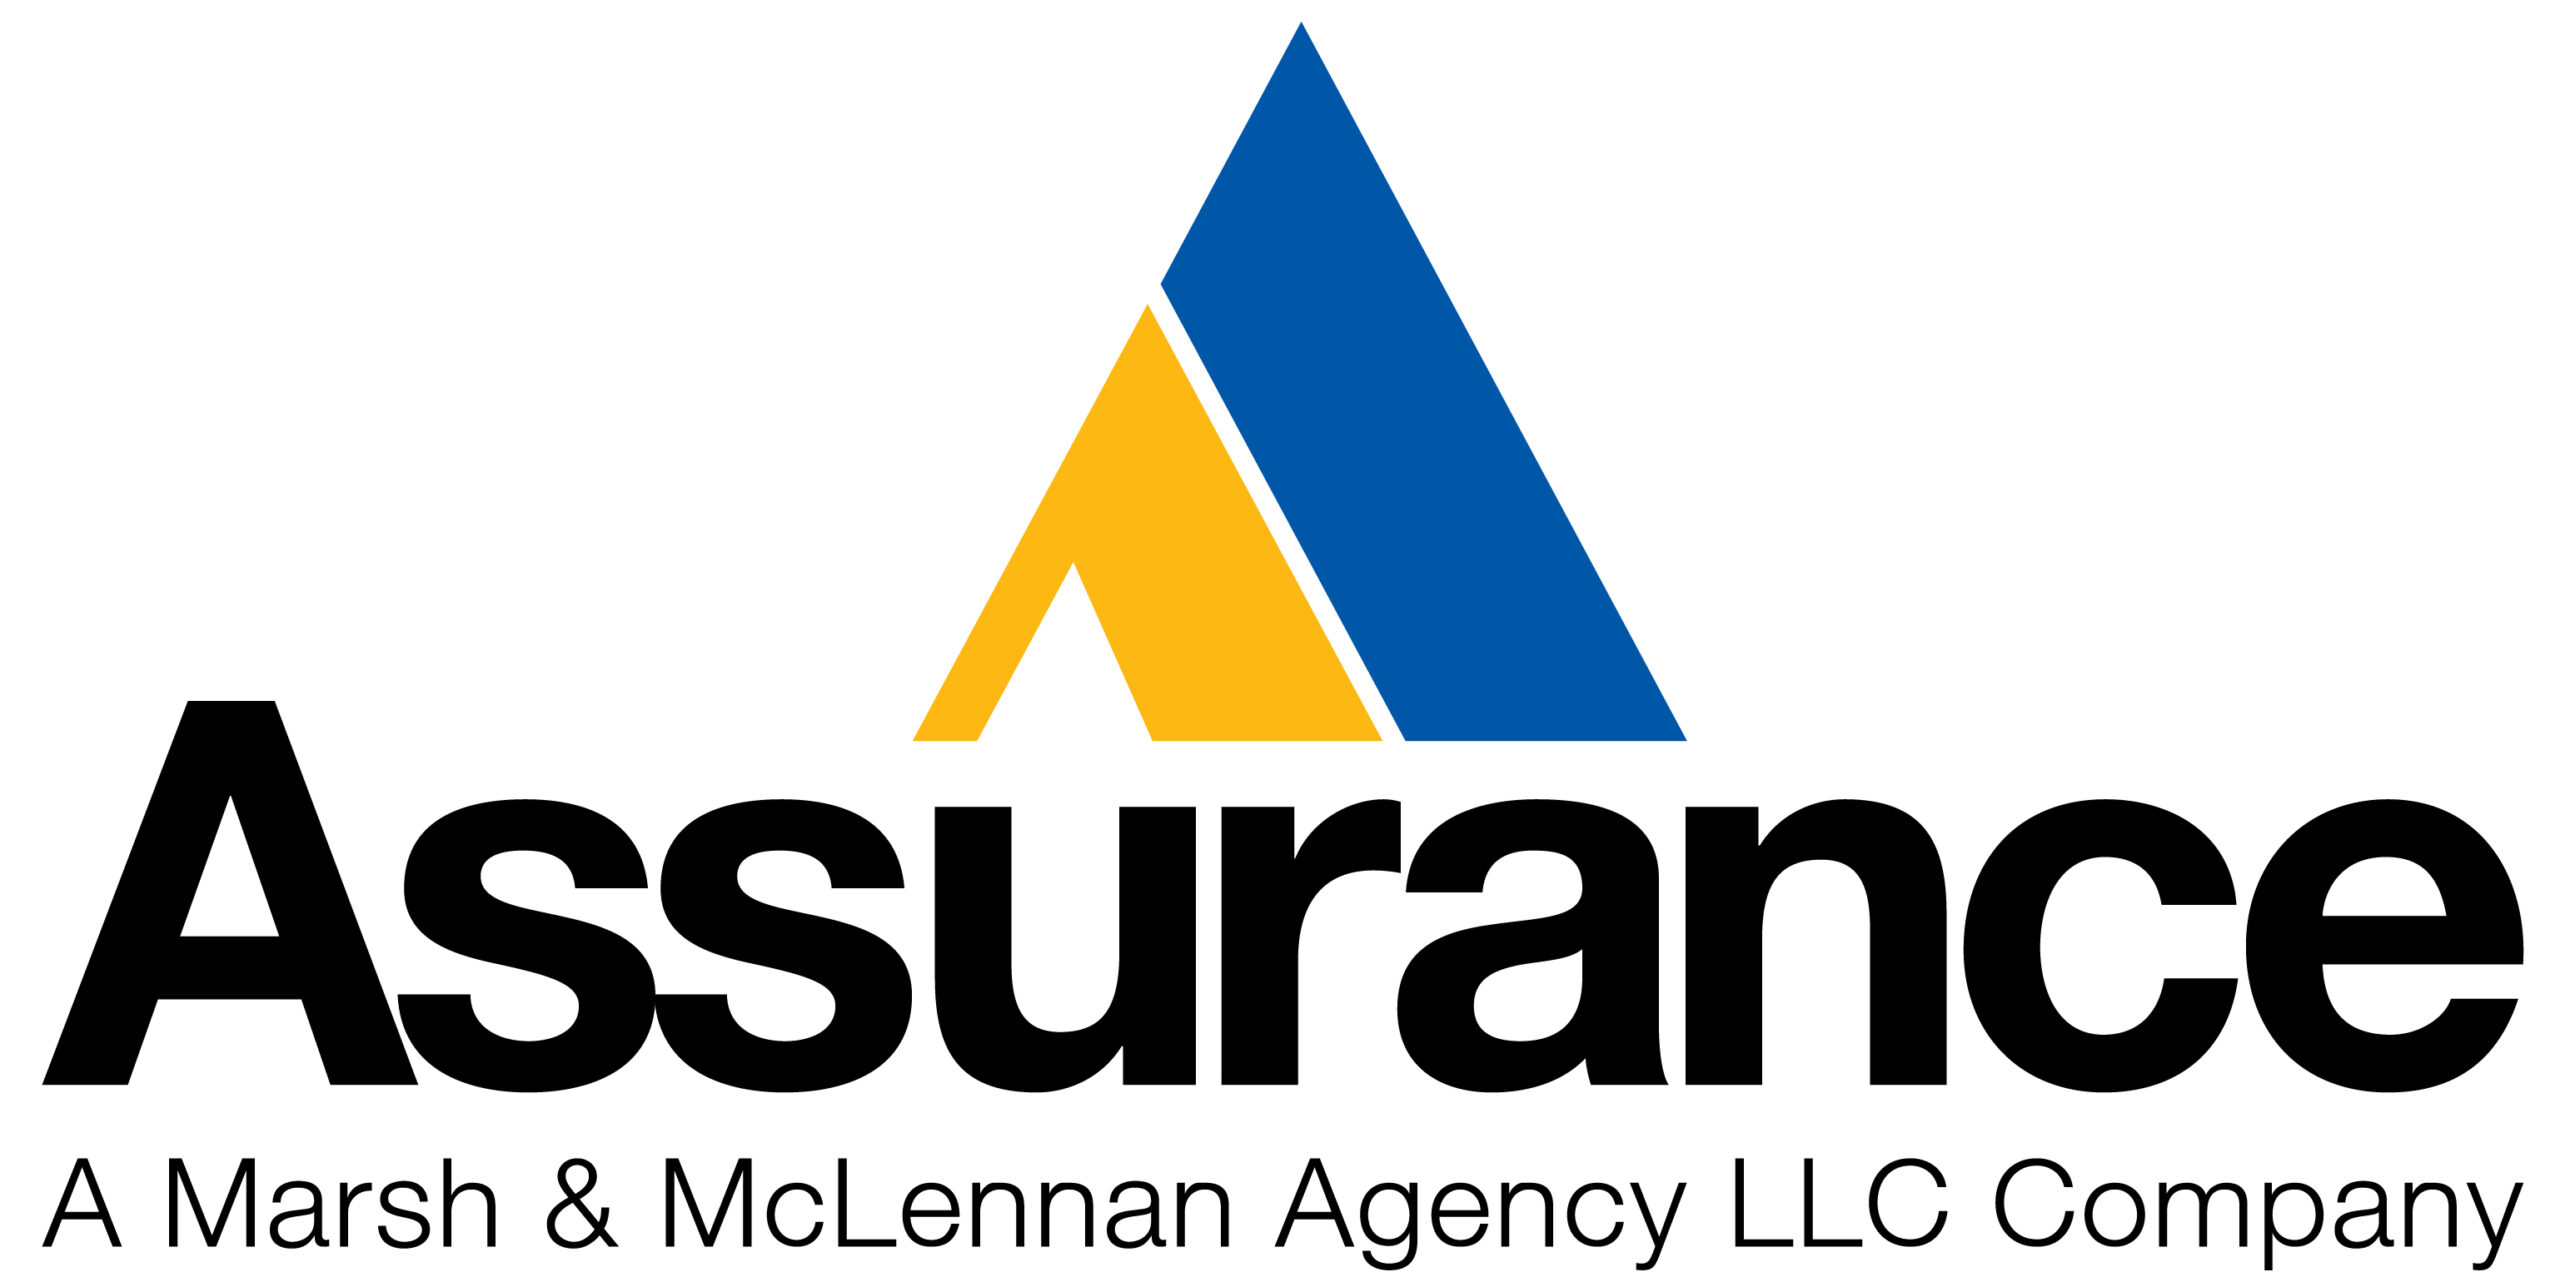 Assurance_MMA_Logos_Stacked_Full_Color